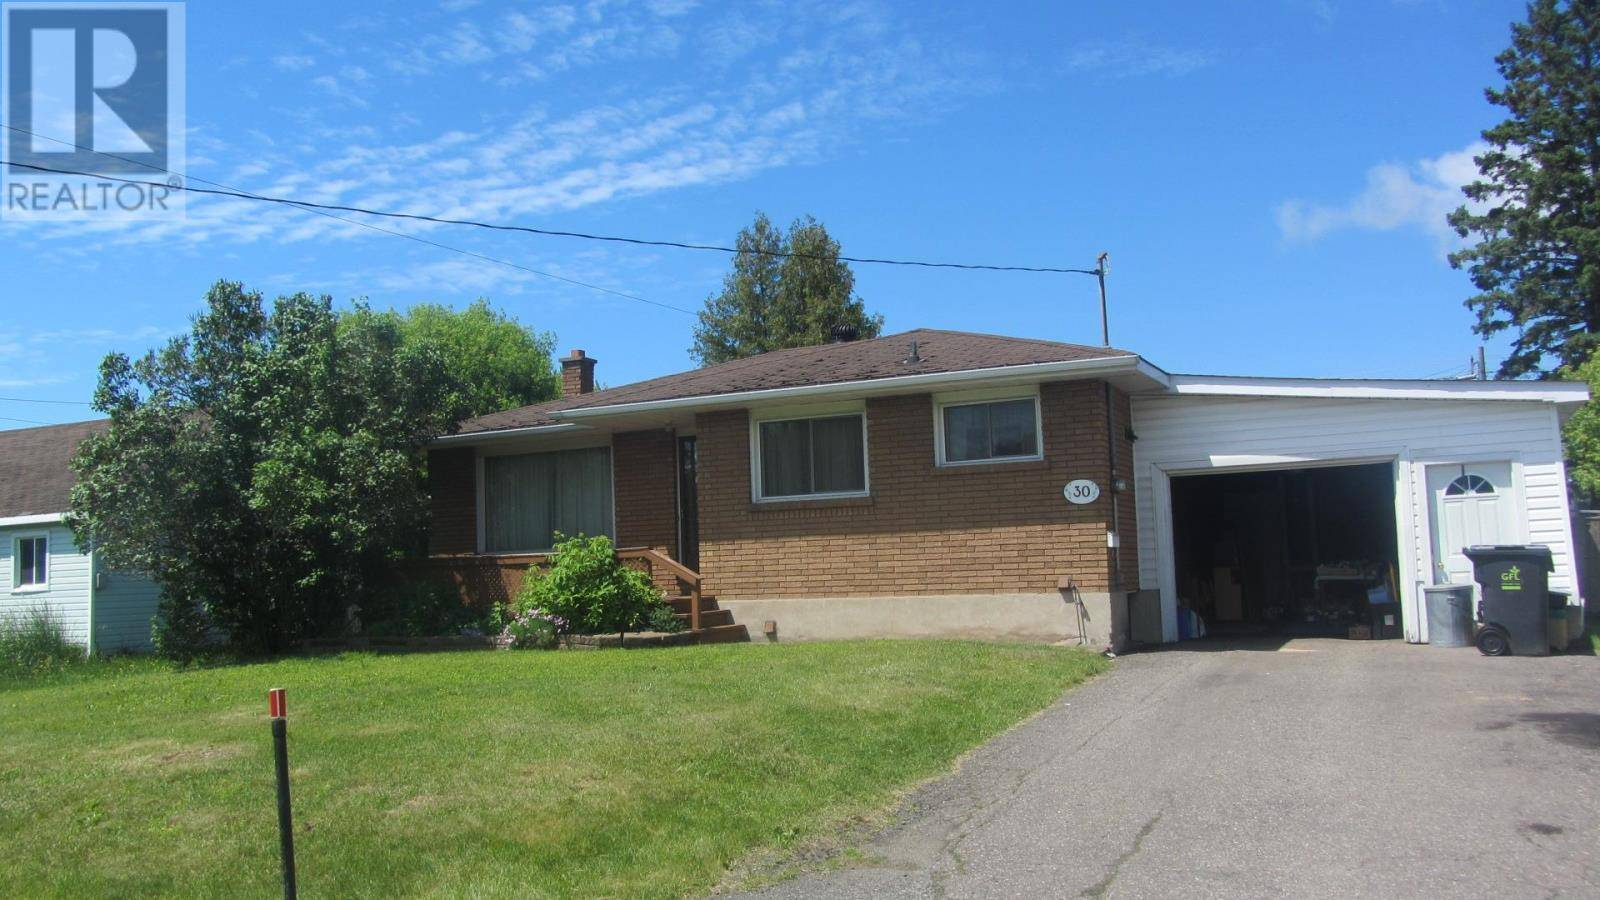 House for sale at 30 Hare St Sault Ste. Marie Ontario - MLS: SM126534